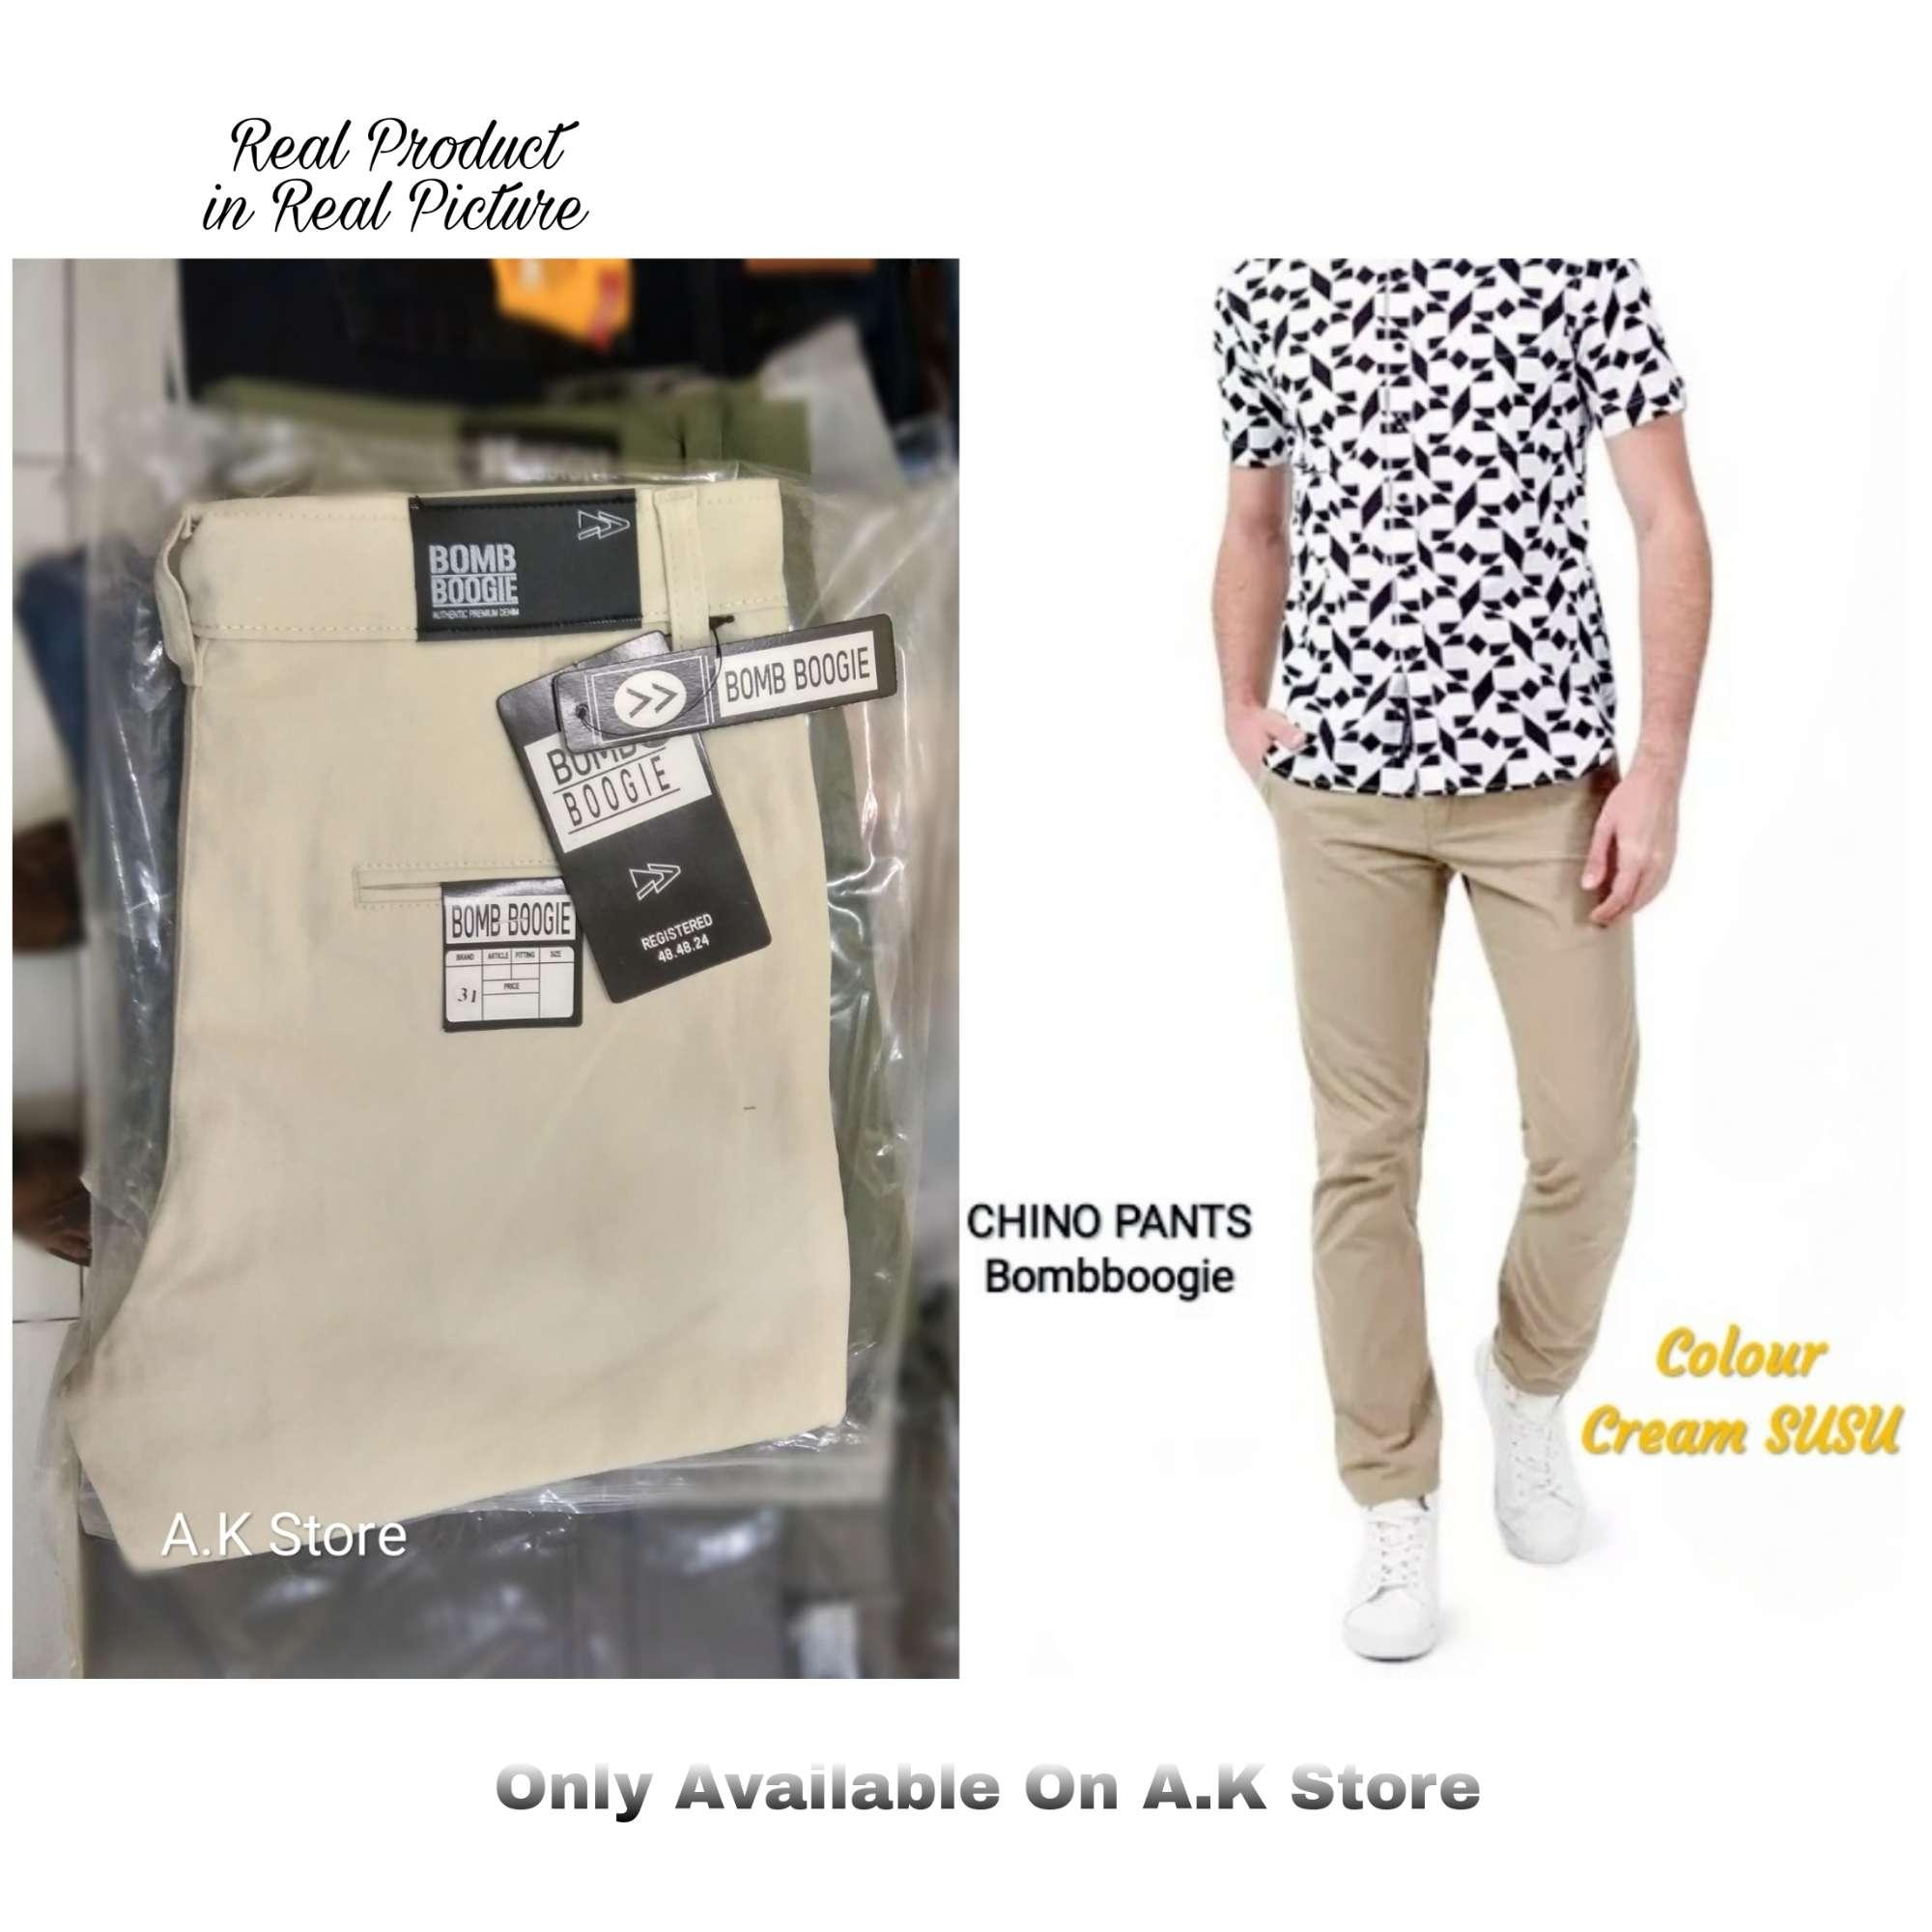 CHINO PANTS - Authentic Premium Denim Bombboogie